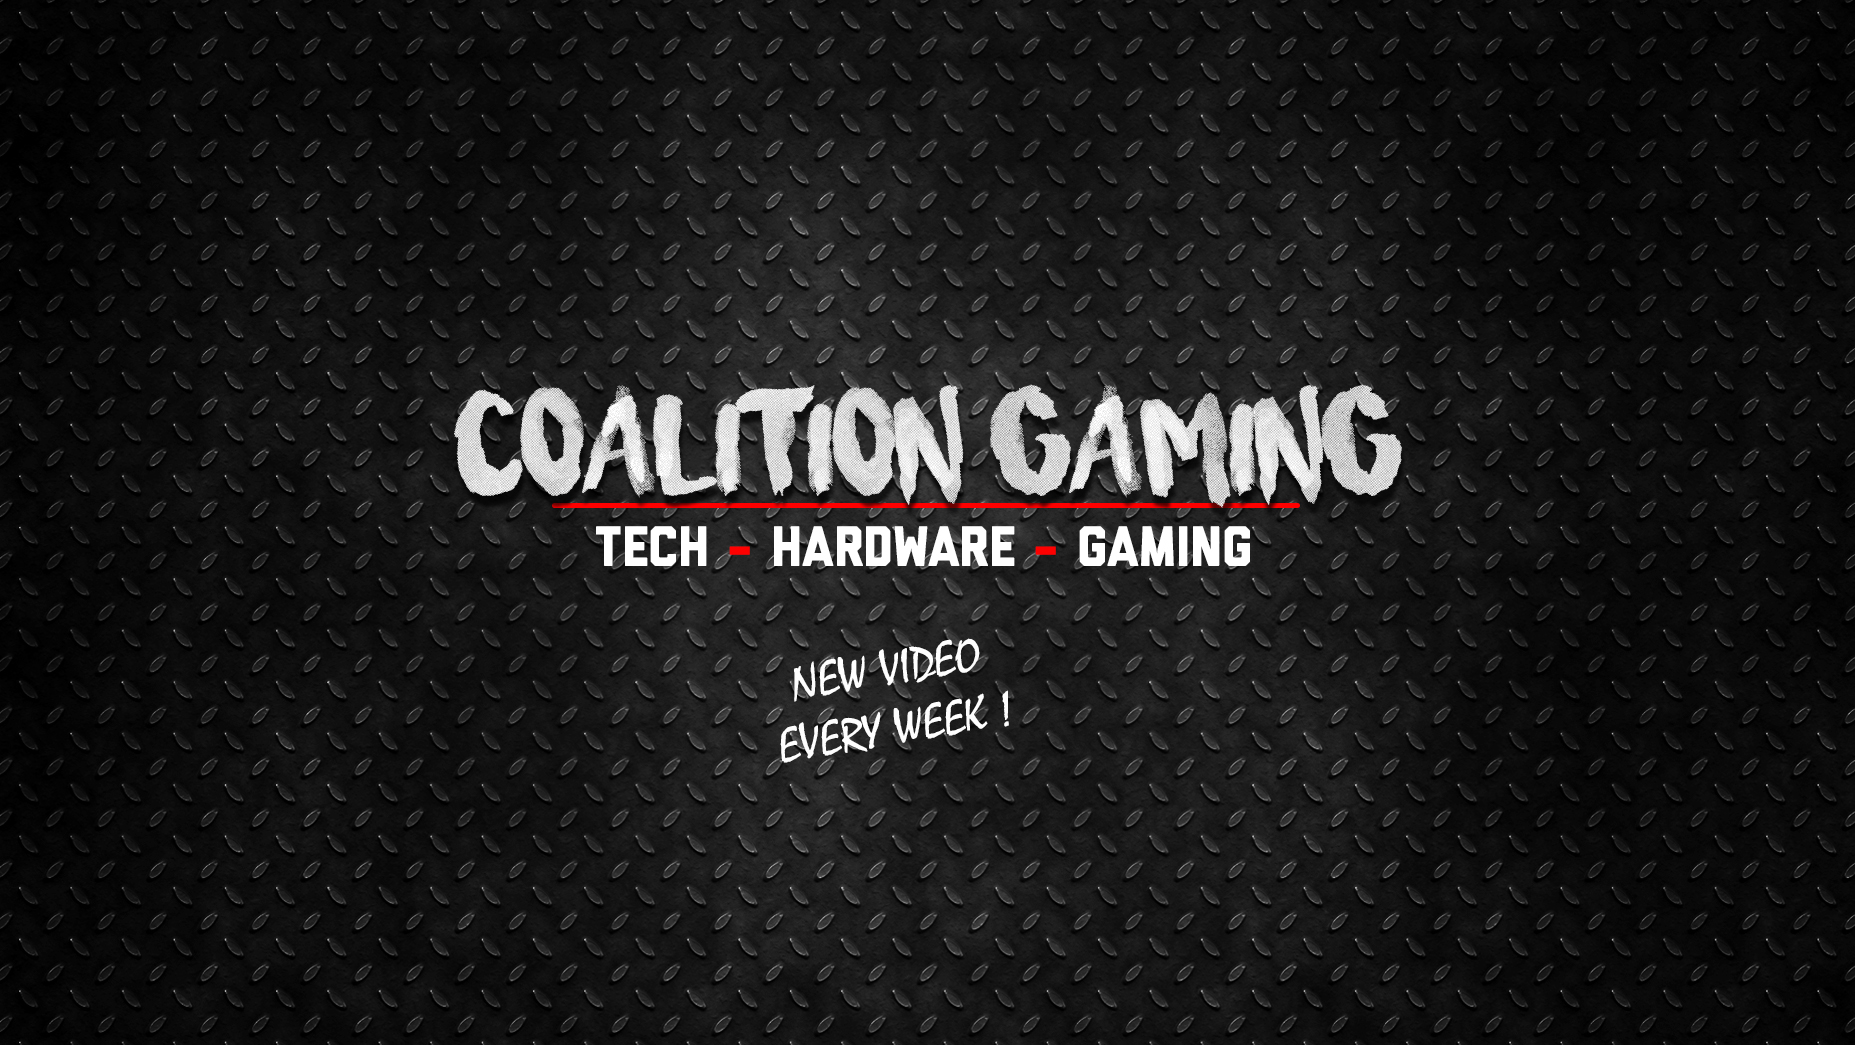 CoalitionGaming's Content - Linus Tech Tips